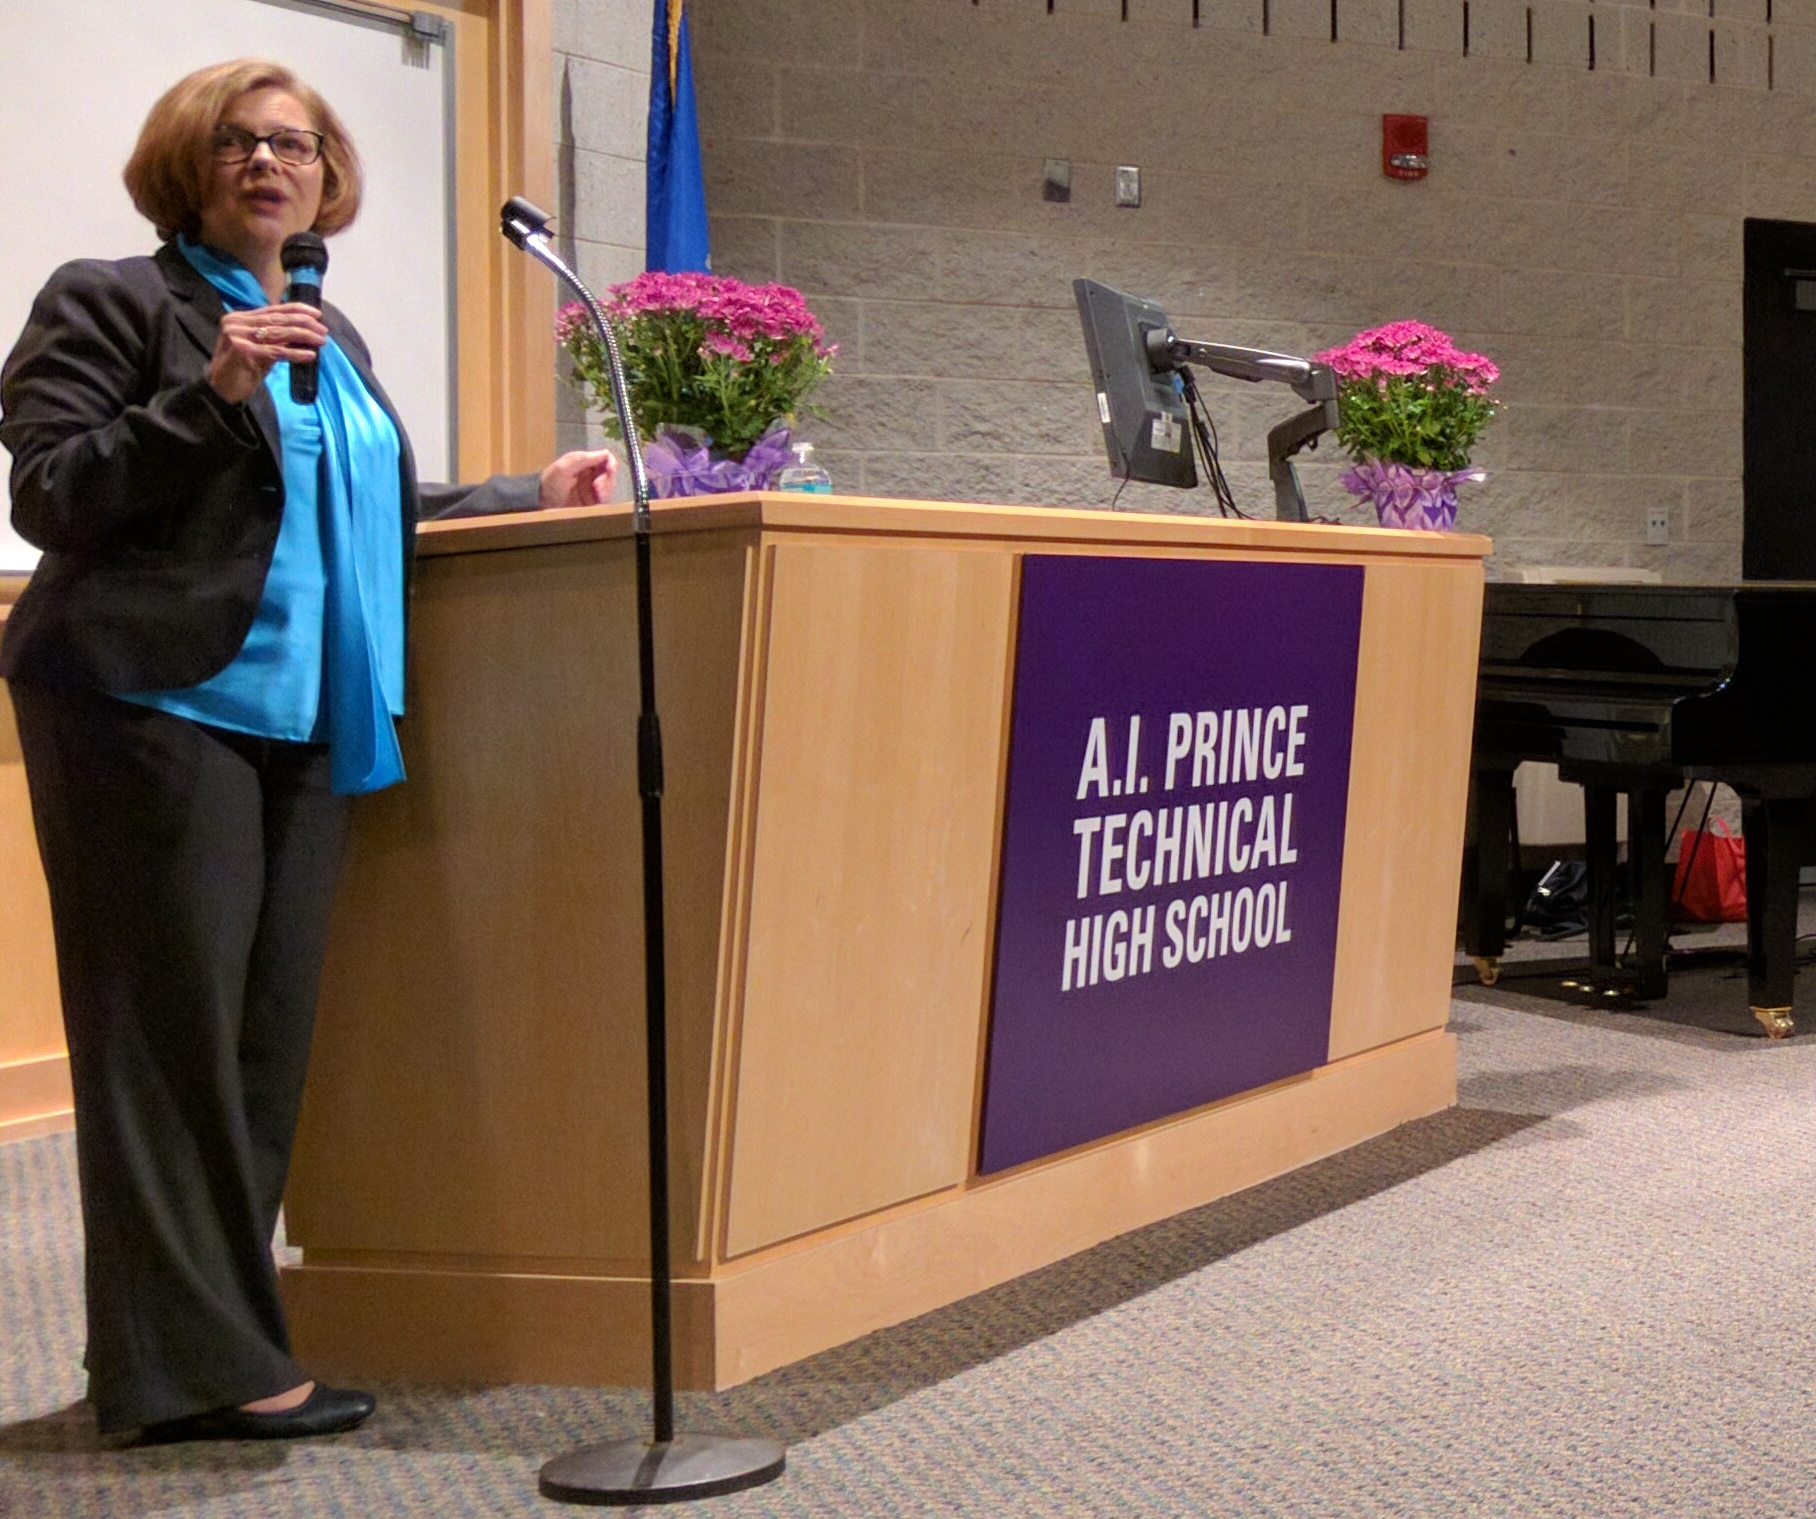 A back-to-school pep talk from the education chief